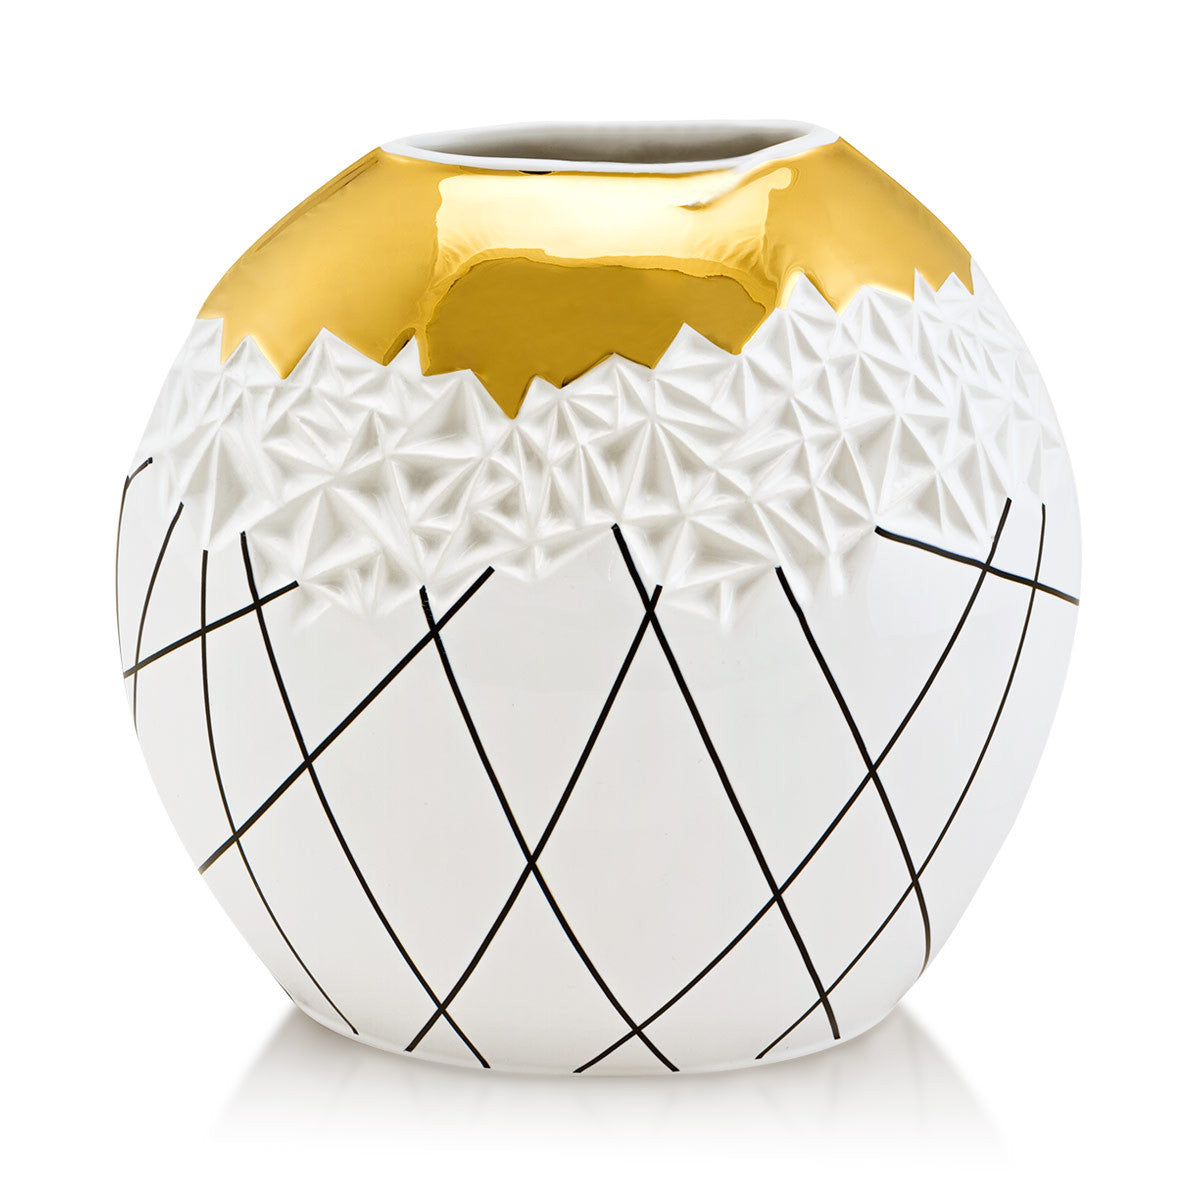 ceramic porcelain contemporary vase finished with contemporary decoration handmade in Italy